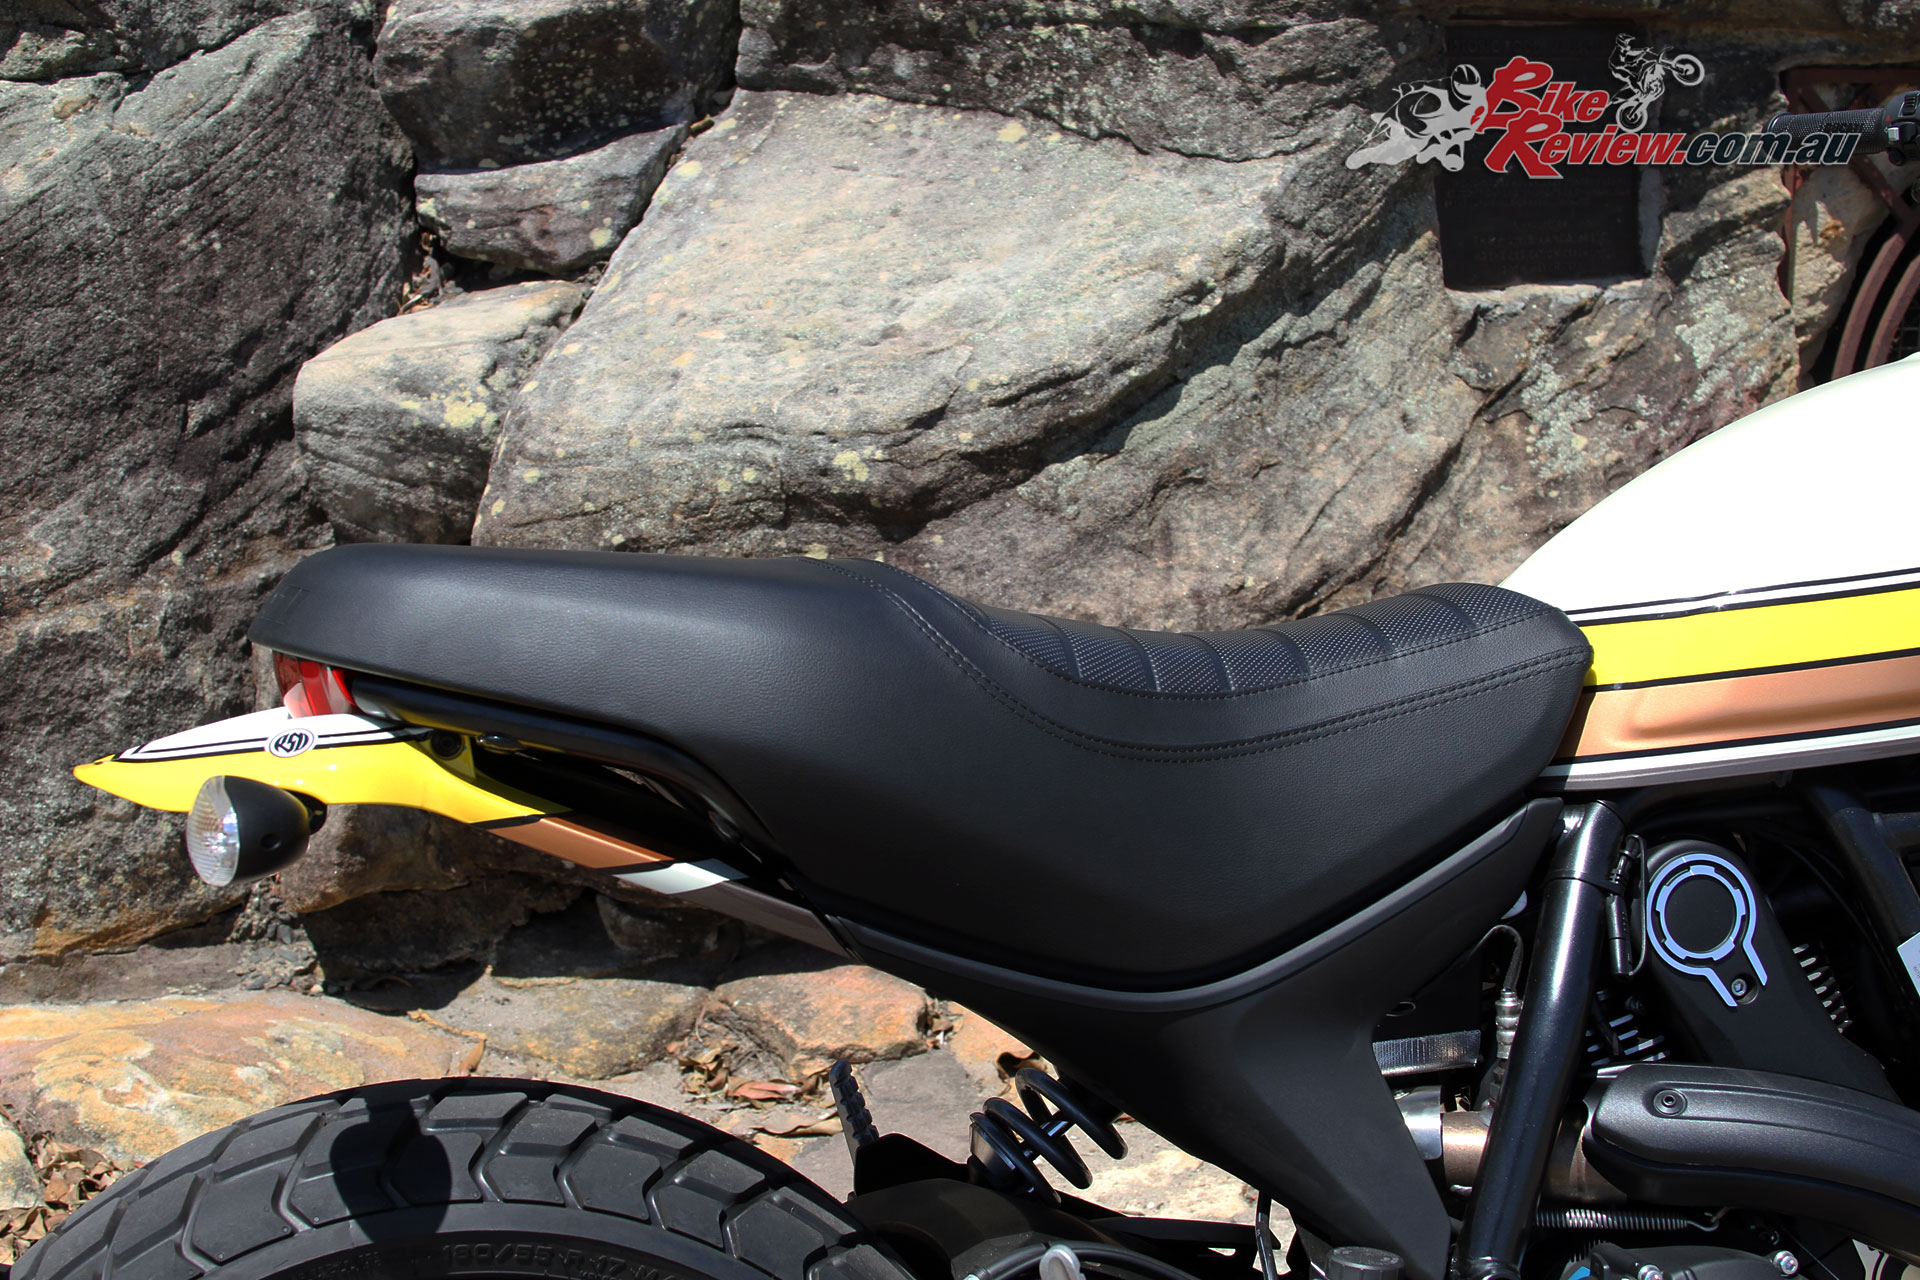 A 790mm seat height will offer easy reach to the ground for more riders